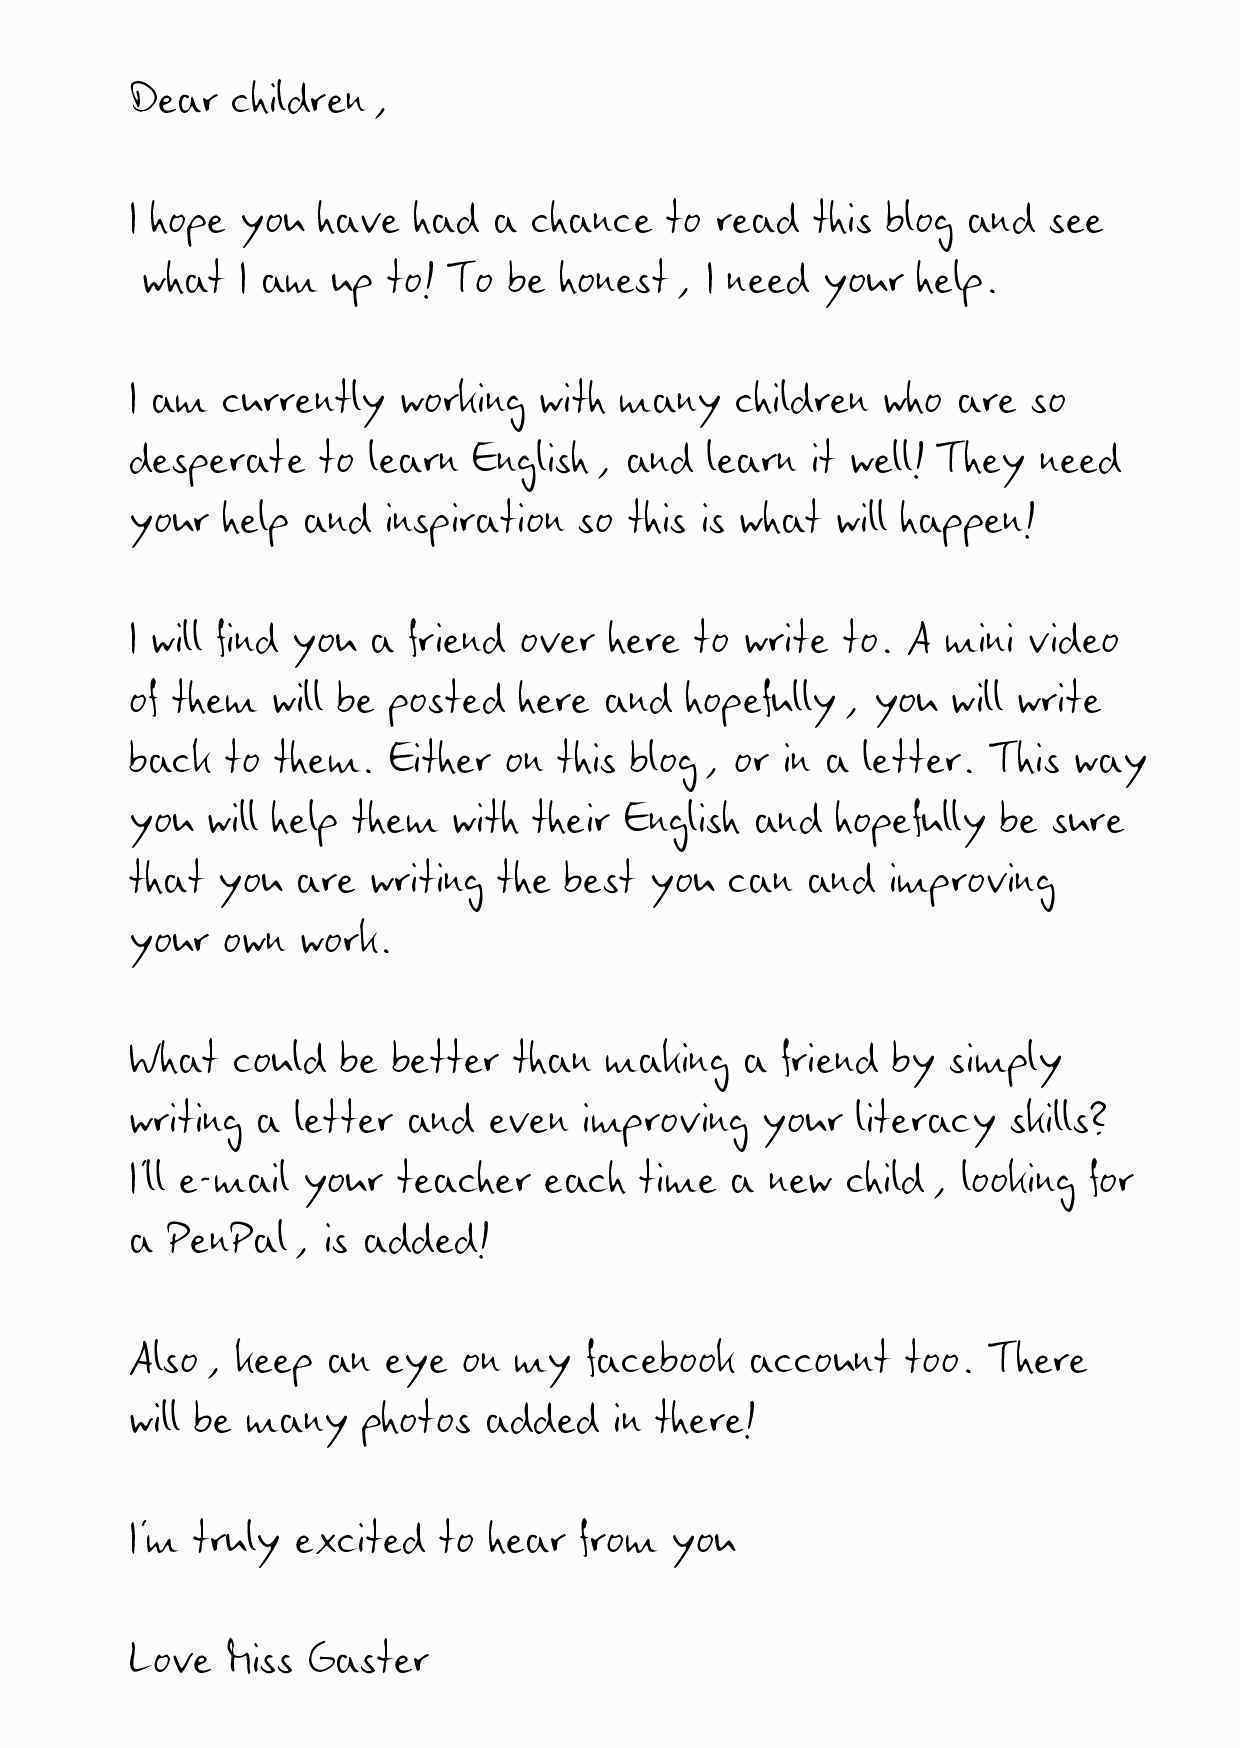 10 Pen Pal Letter Template Samples